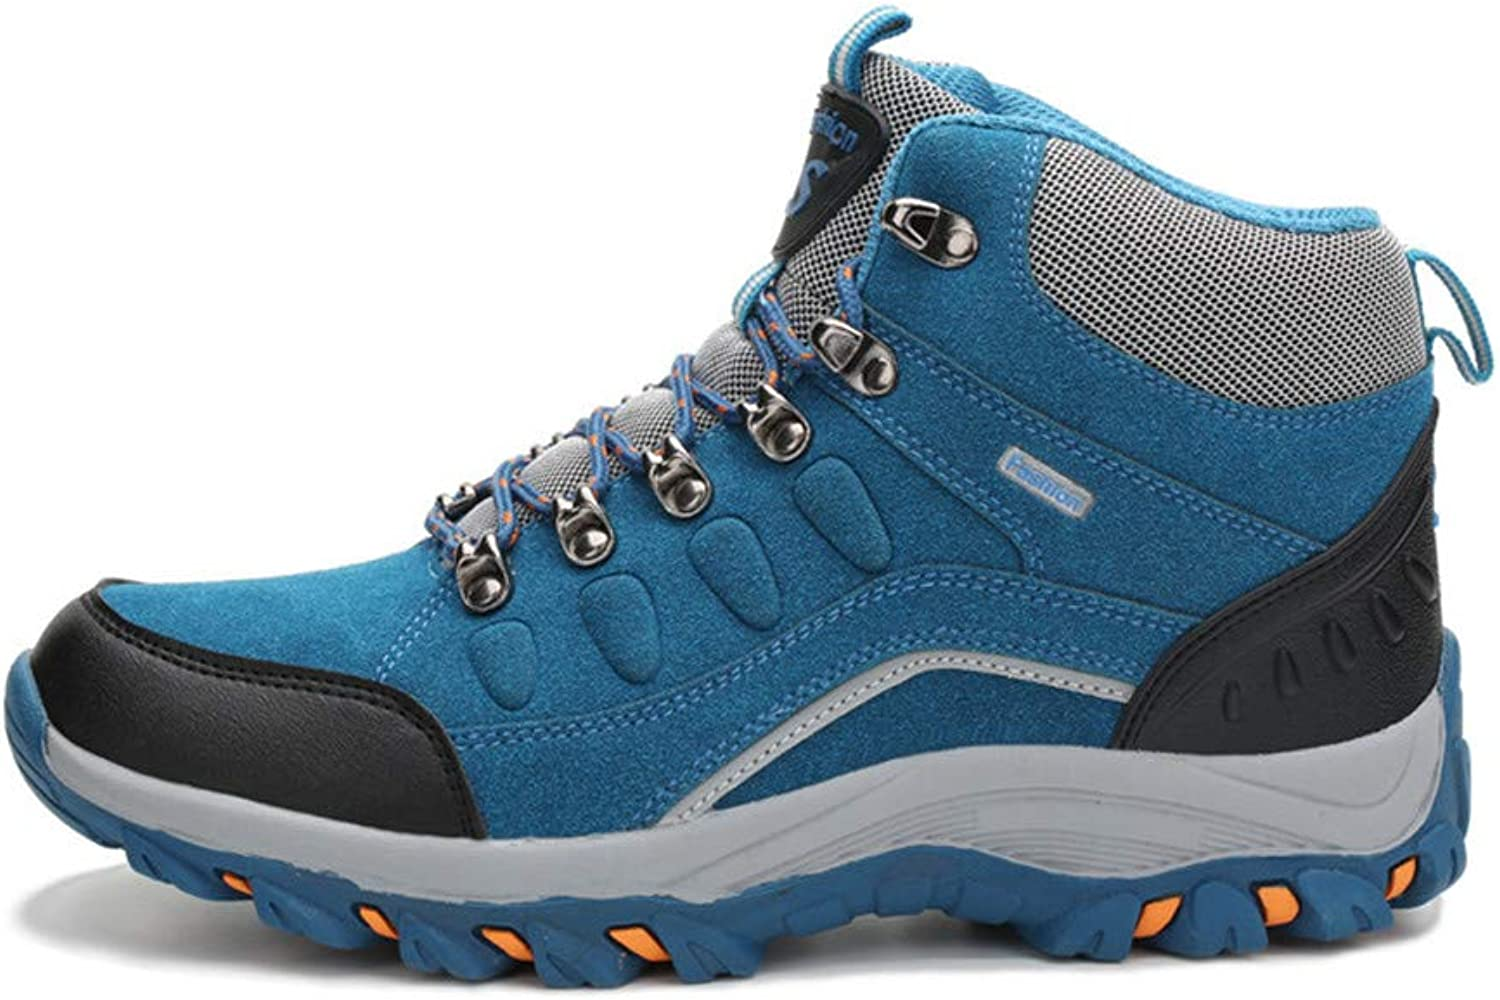 Cdon Women Hiking shoes Breathable Athletic Outdoor Sneakers